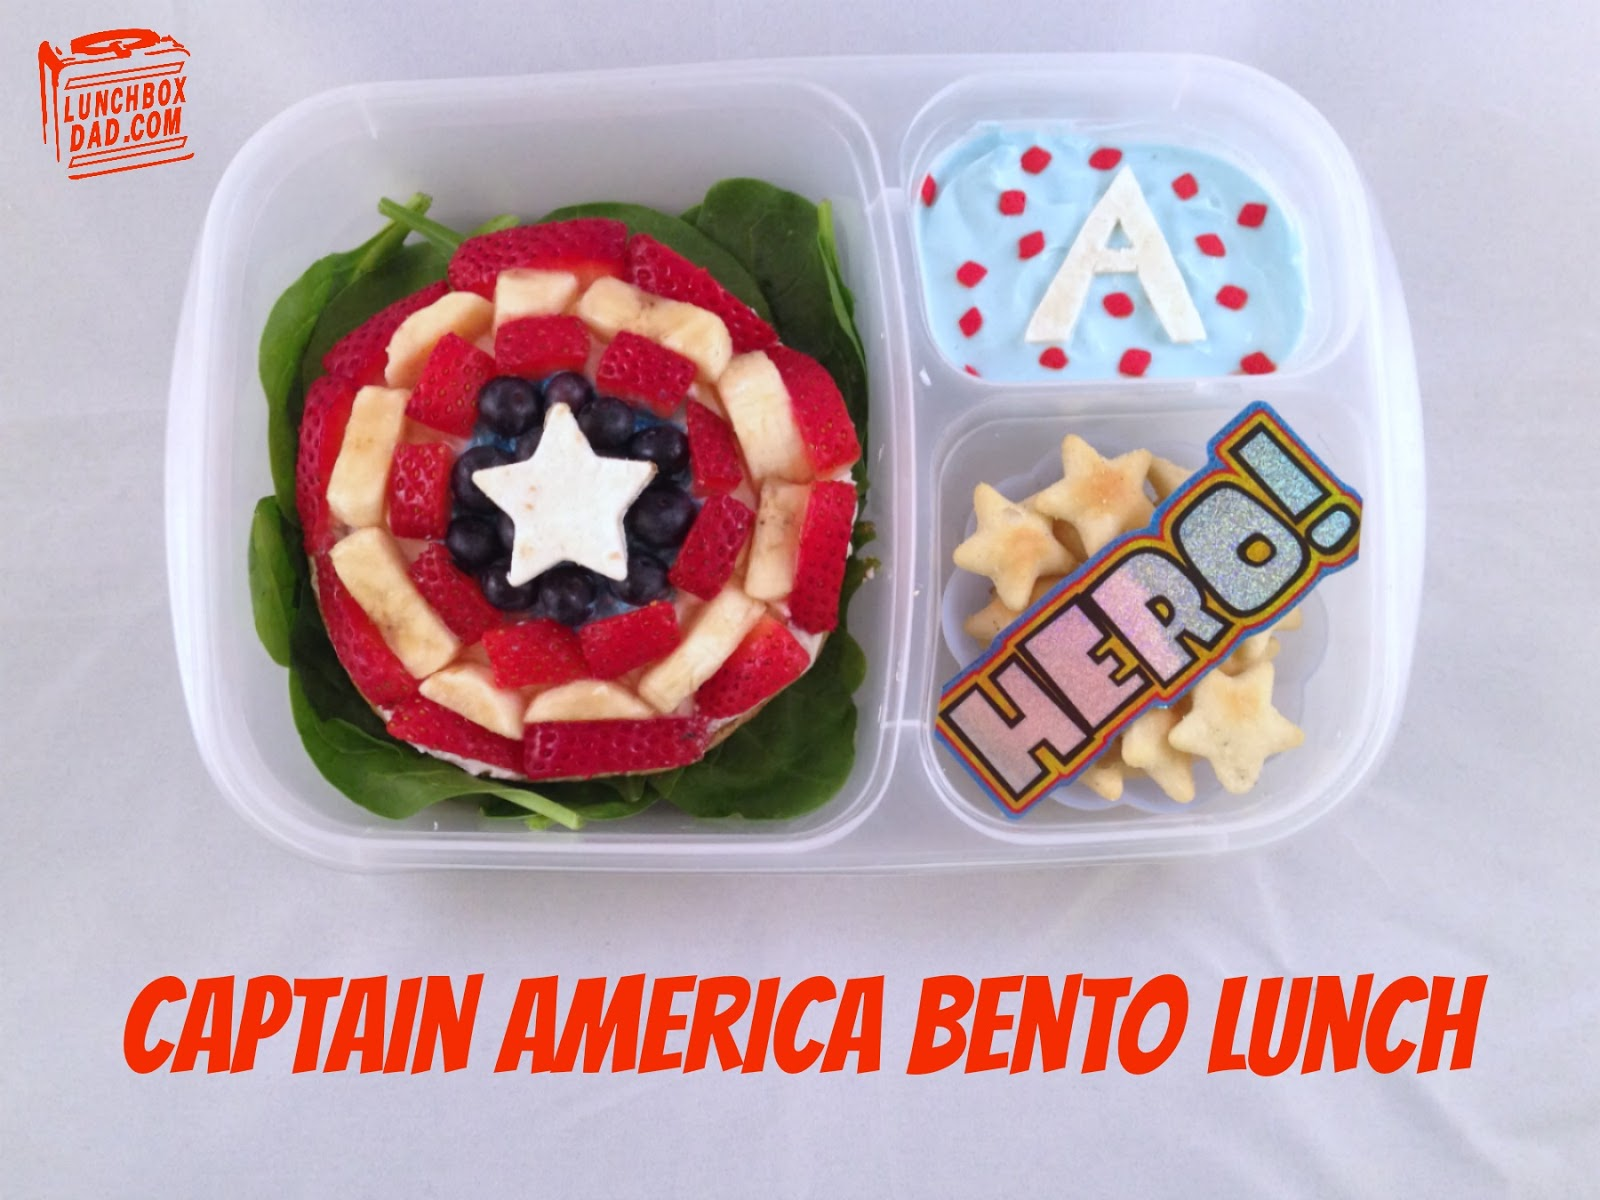 Captain America Bento Lunch